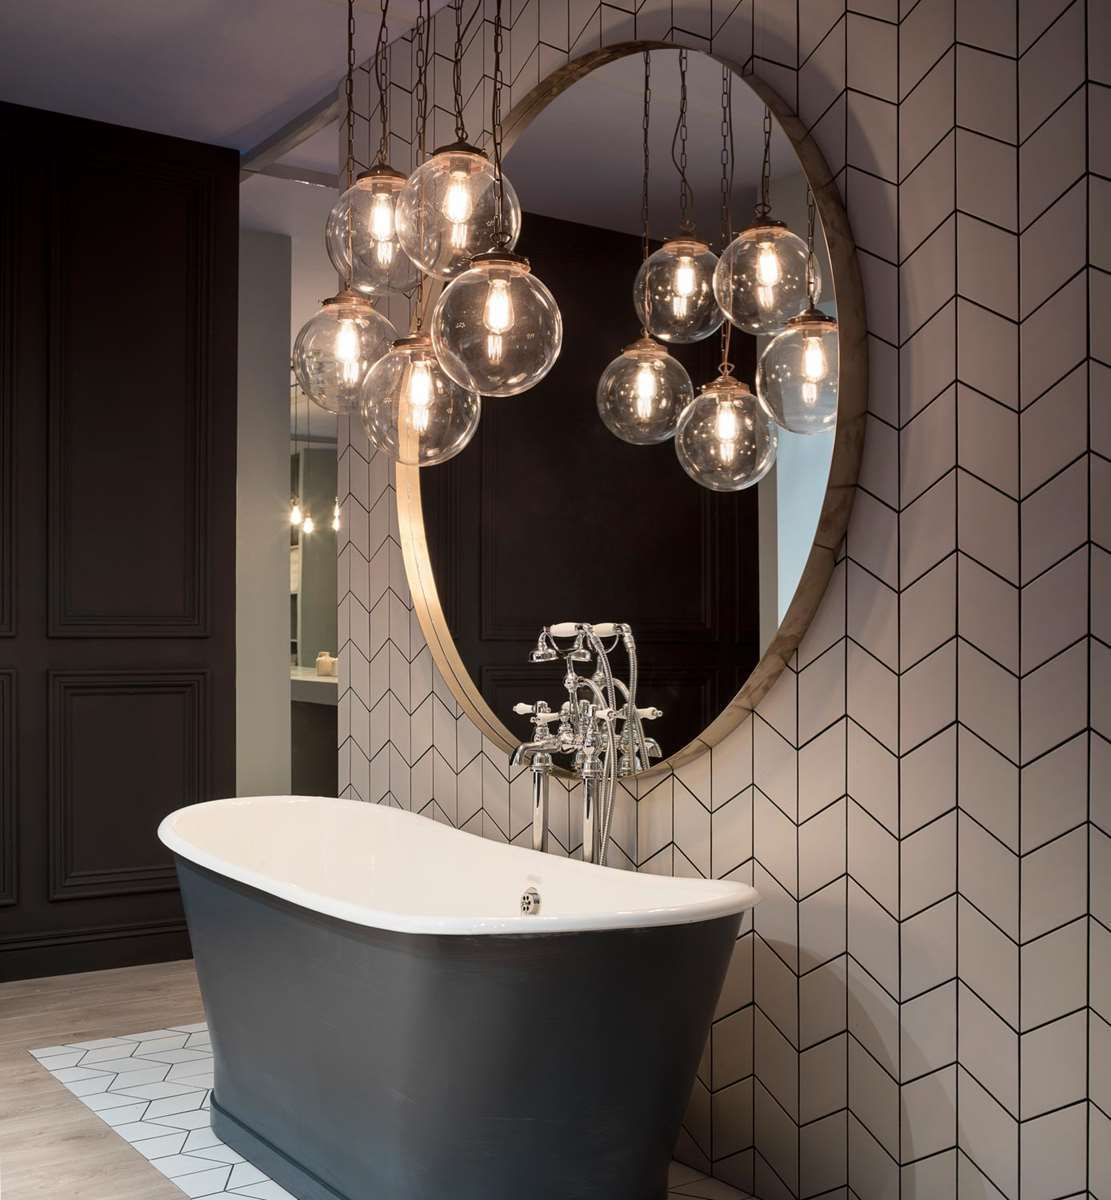 √ 10 Bathroom Lighting Ideas – Unique Lights for Bathroom [BEST PICK]